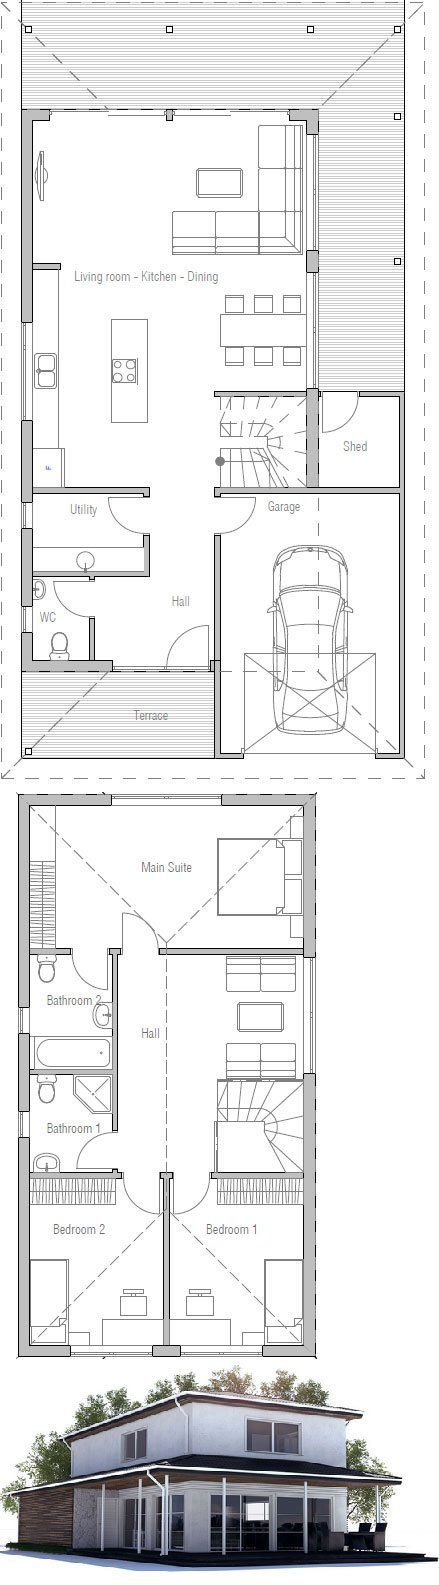 Small House Plan to narrow with three bedrooms. Large covered terrace, garage, two living areas.